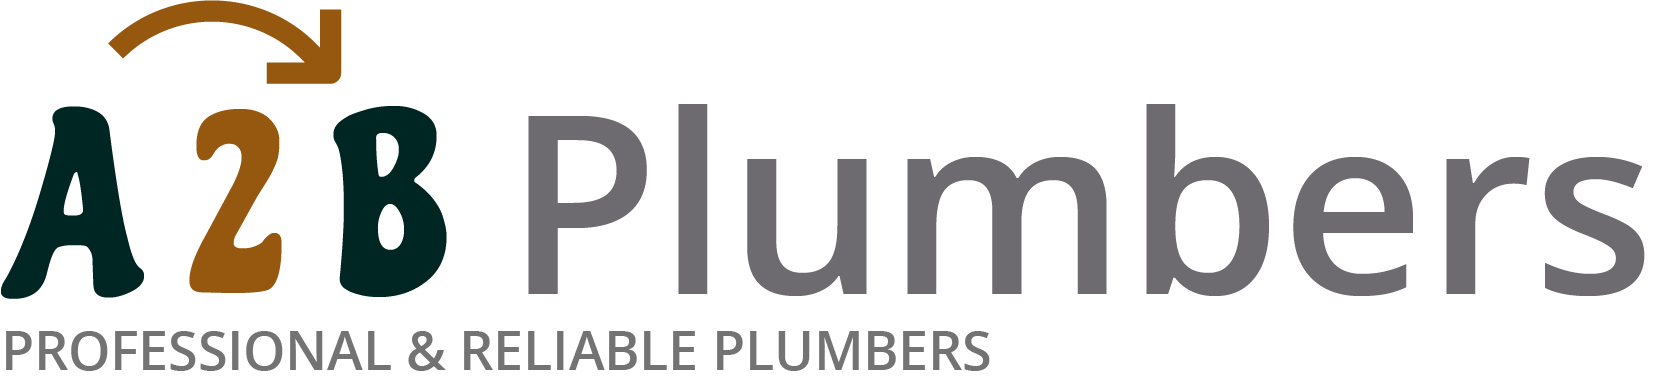 If you need a boiler installed, a radiator repaired or a leaking tap fixed, call us now - we provide services for properties in Pimlico and the local area.